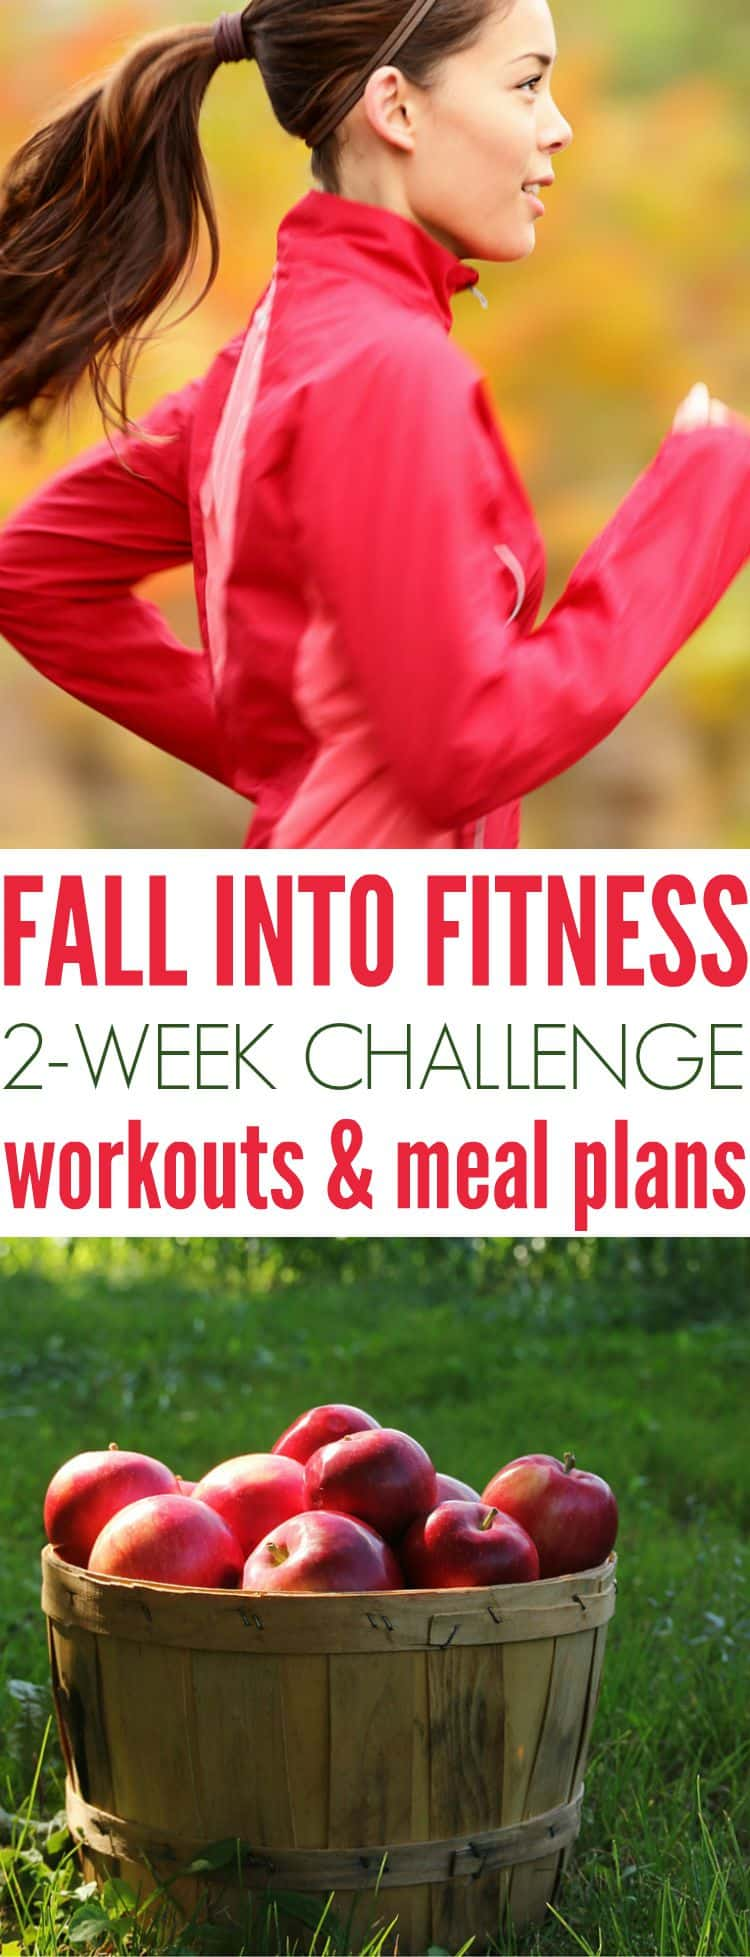 Fall Into Fitness Workouts and Meal Plans 2